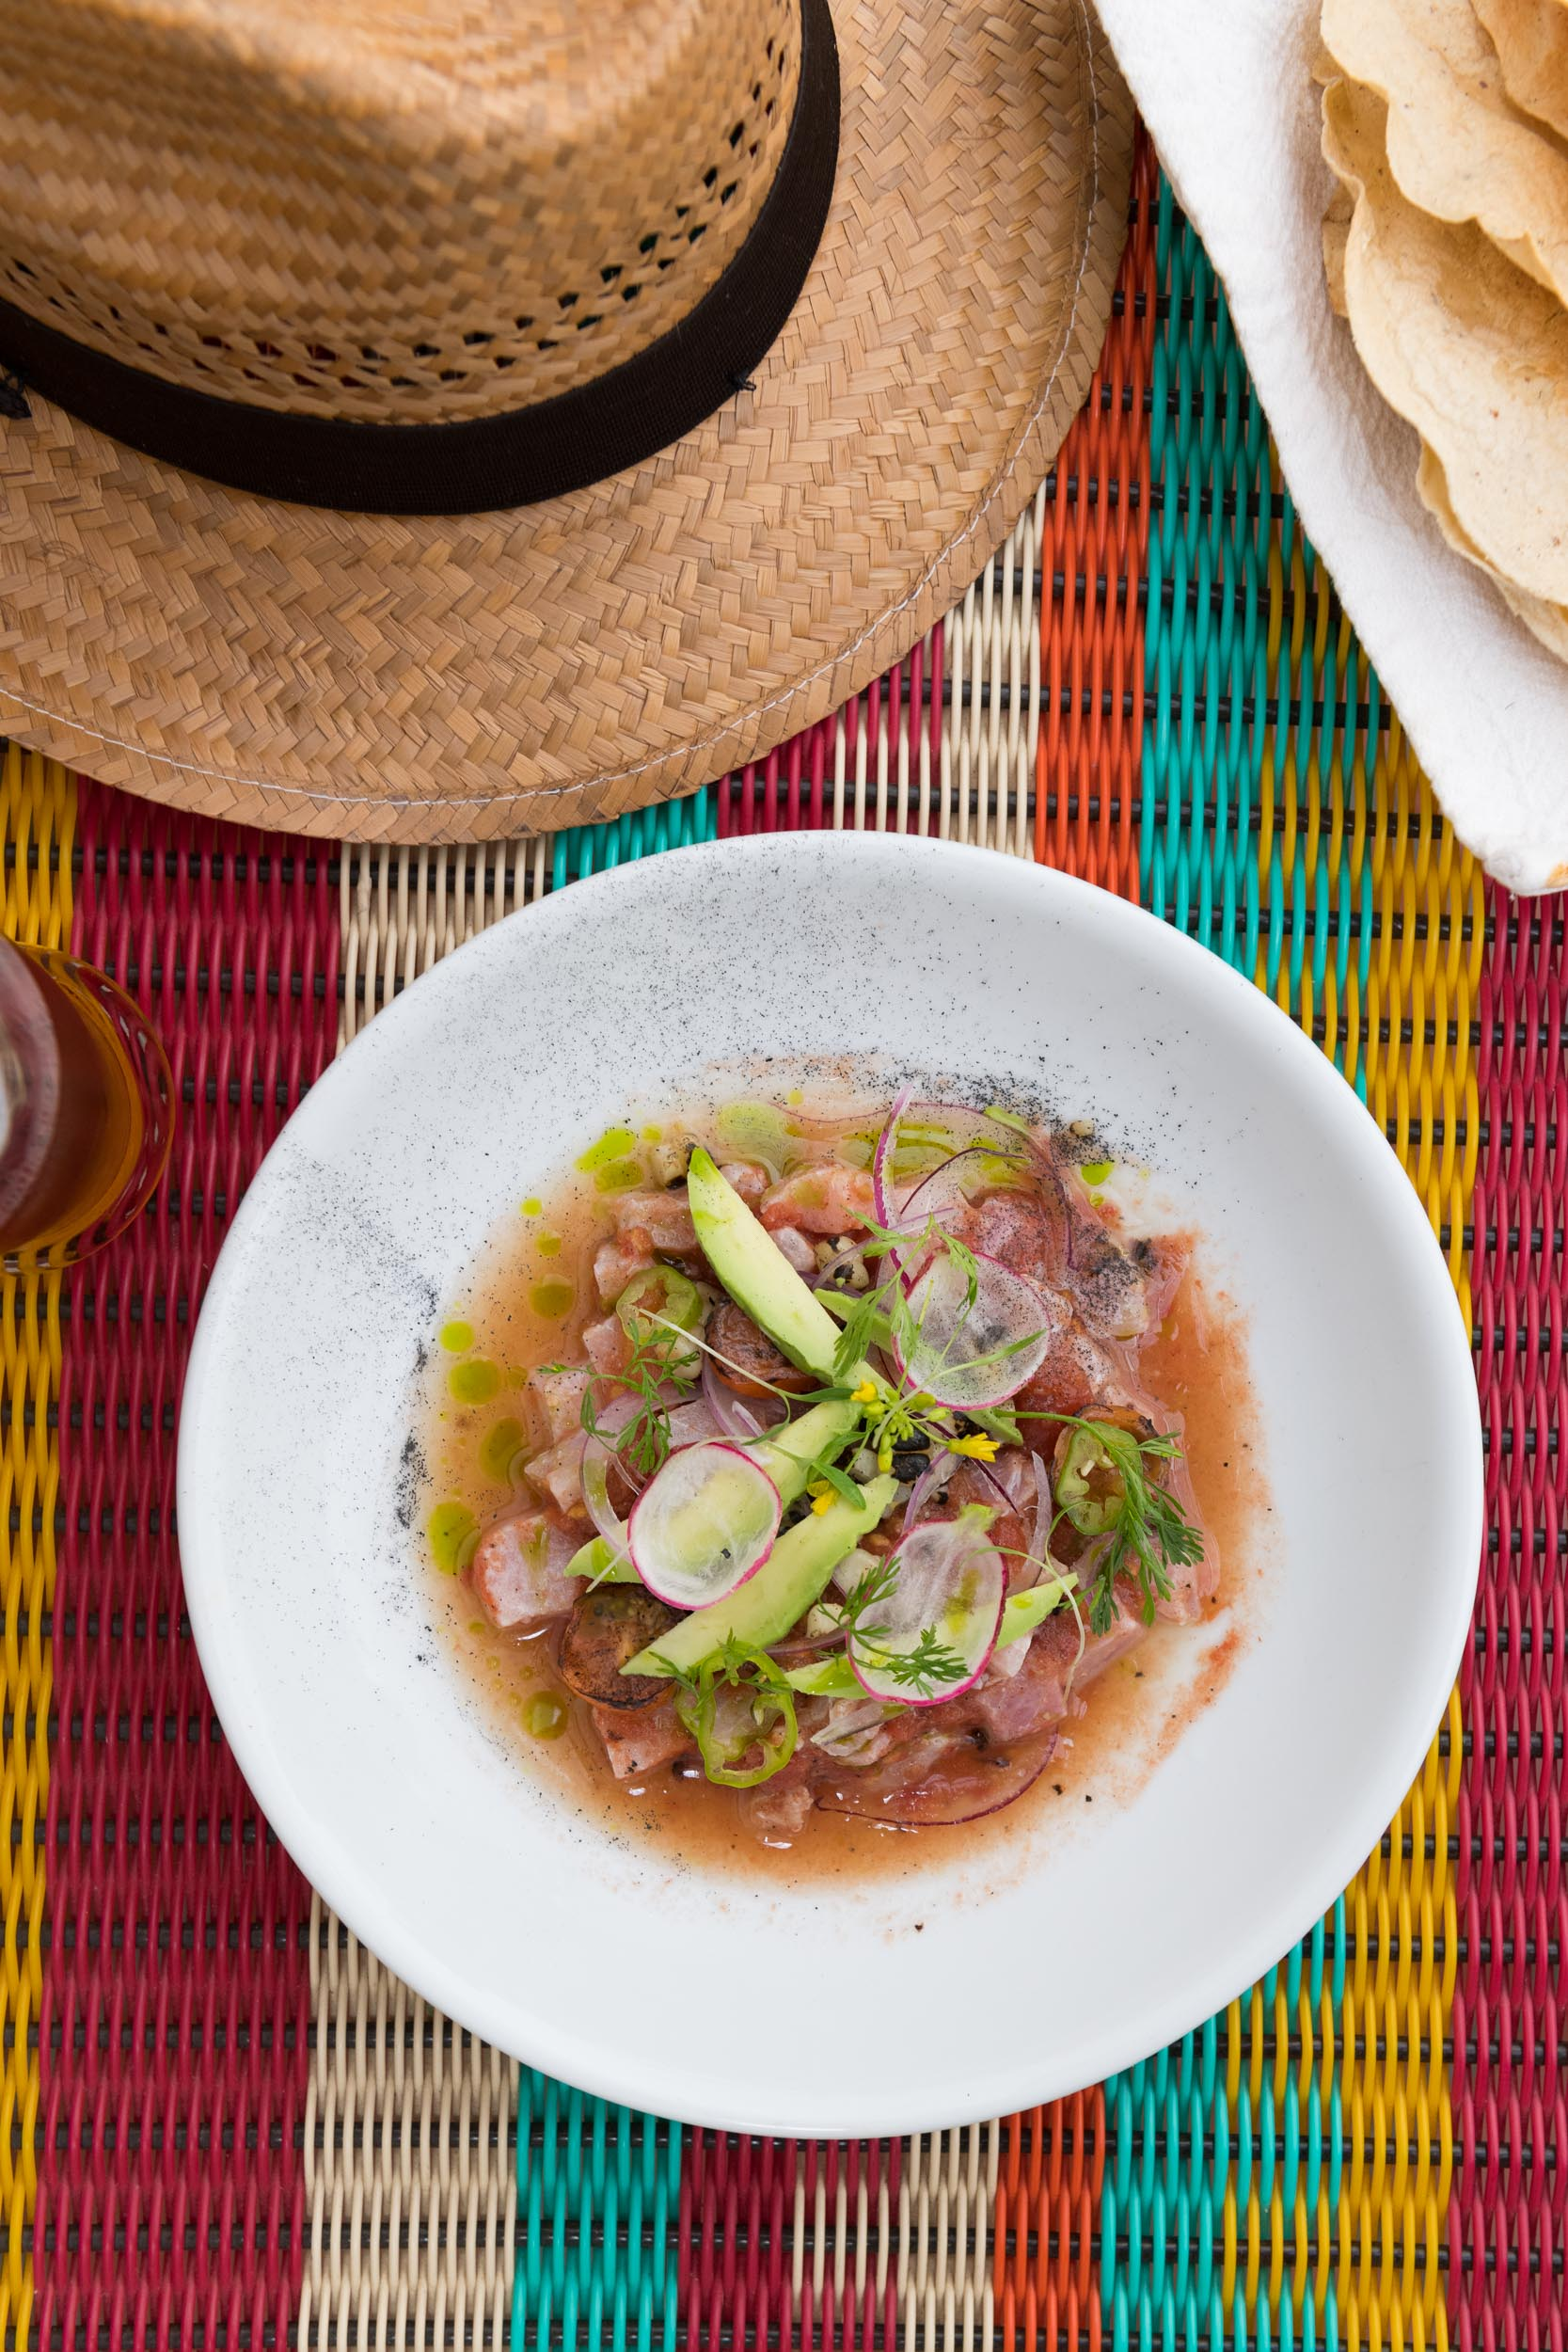 NYC Commercial Food Photographer - Oaxaca Mexico